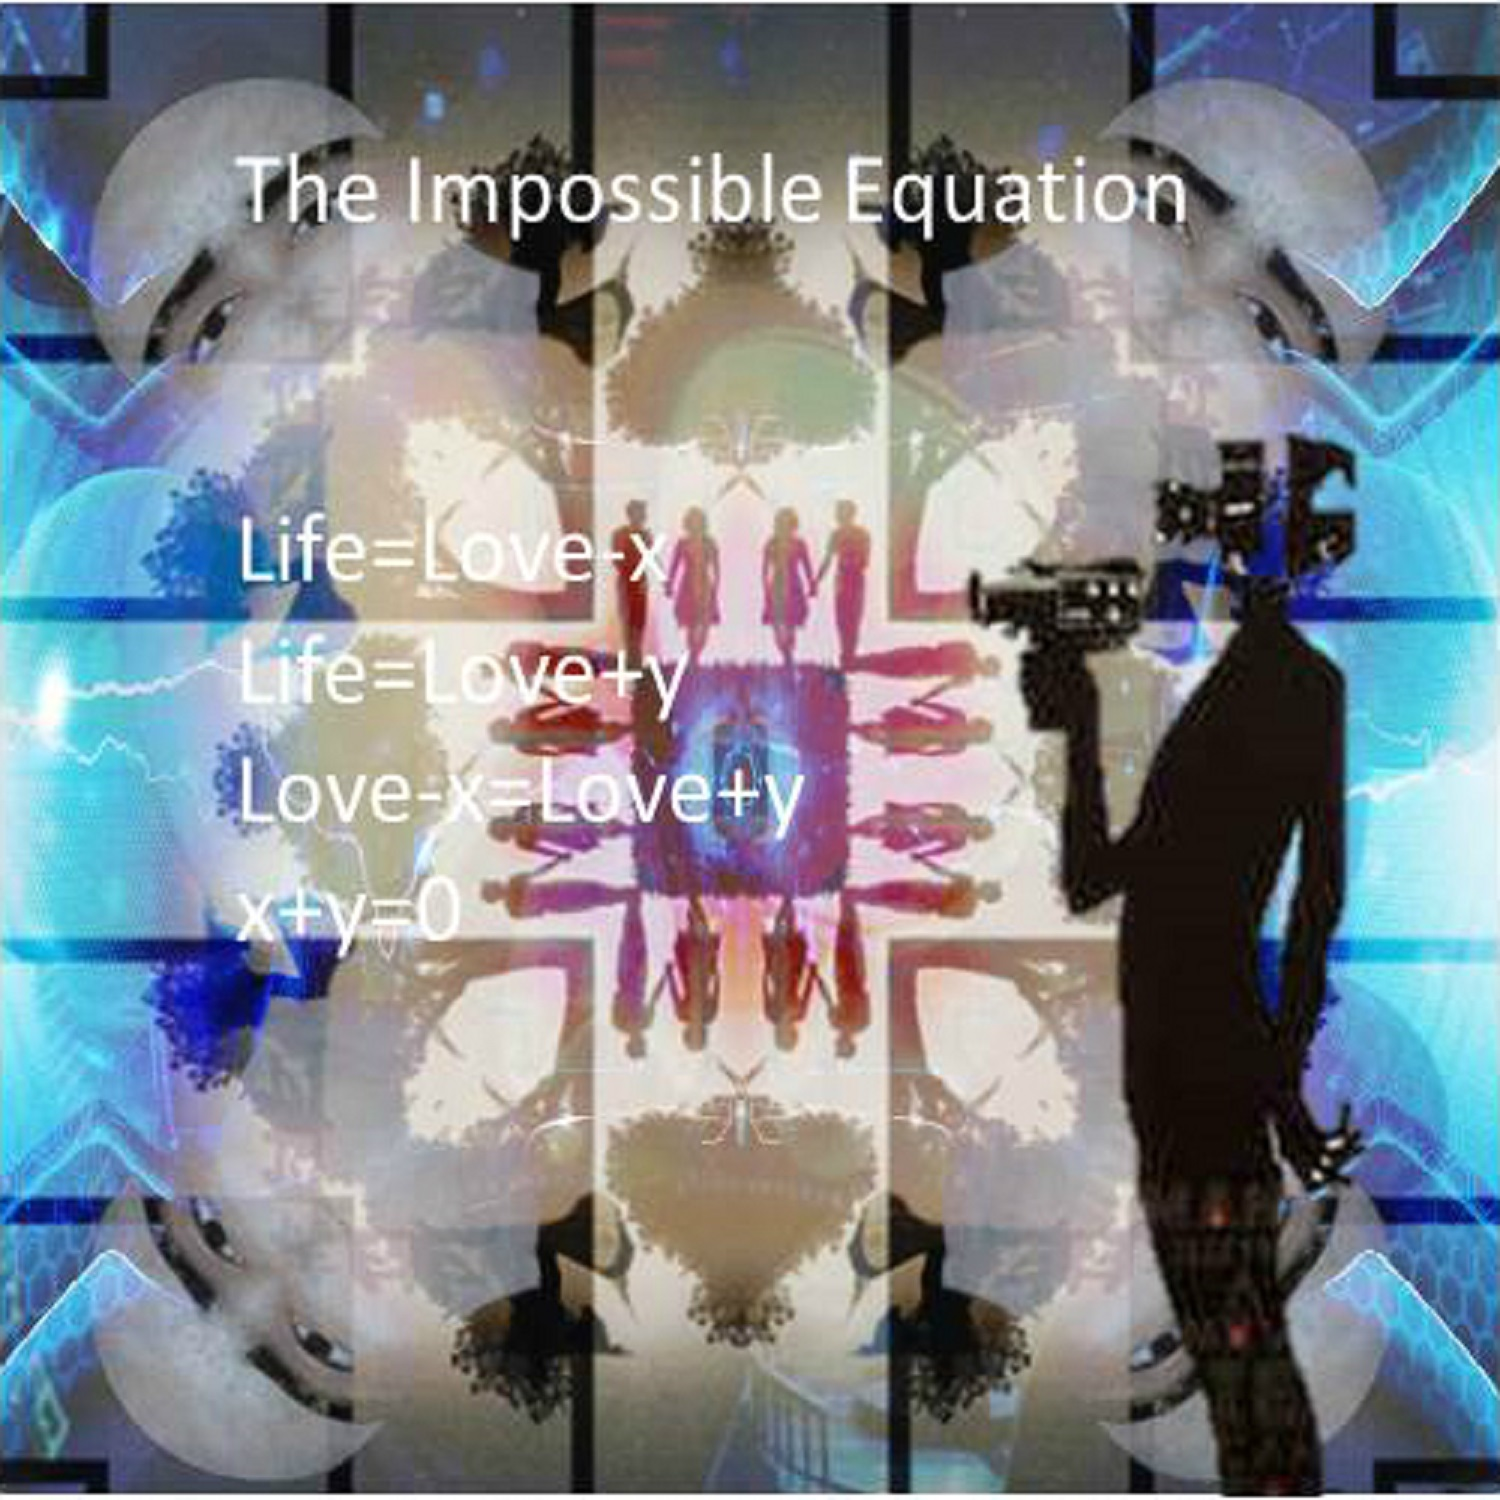 The impossible equation 2.jpg